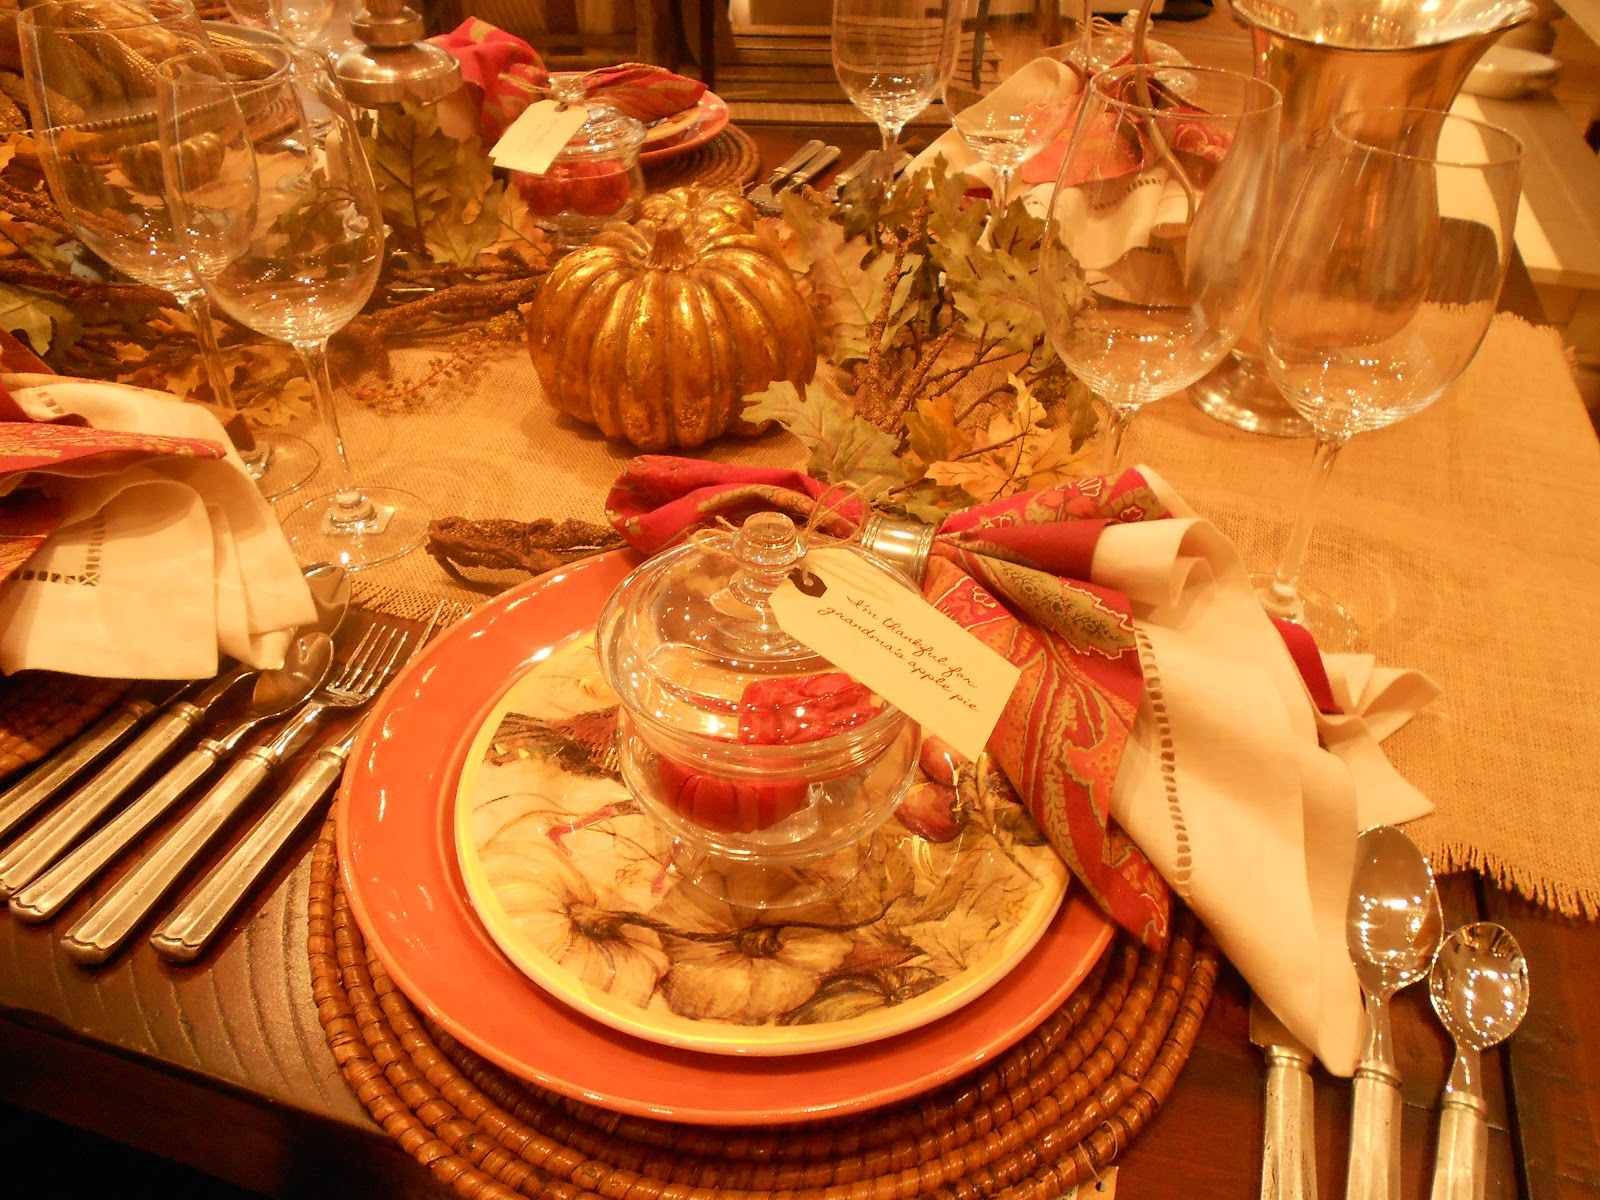 Decorating thanksgiving table tips and tricks interior Decorating thanksgiving table